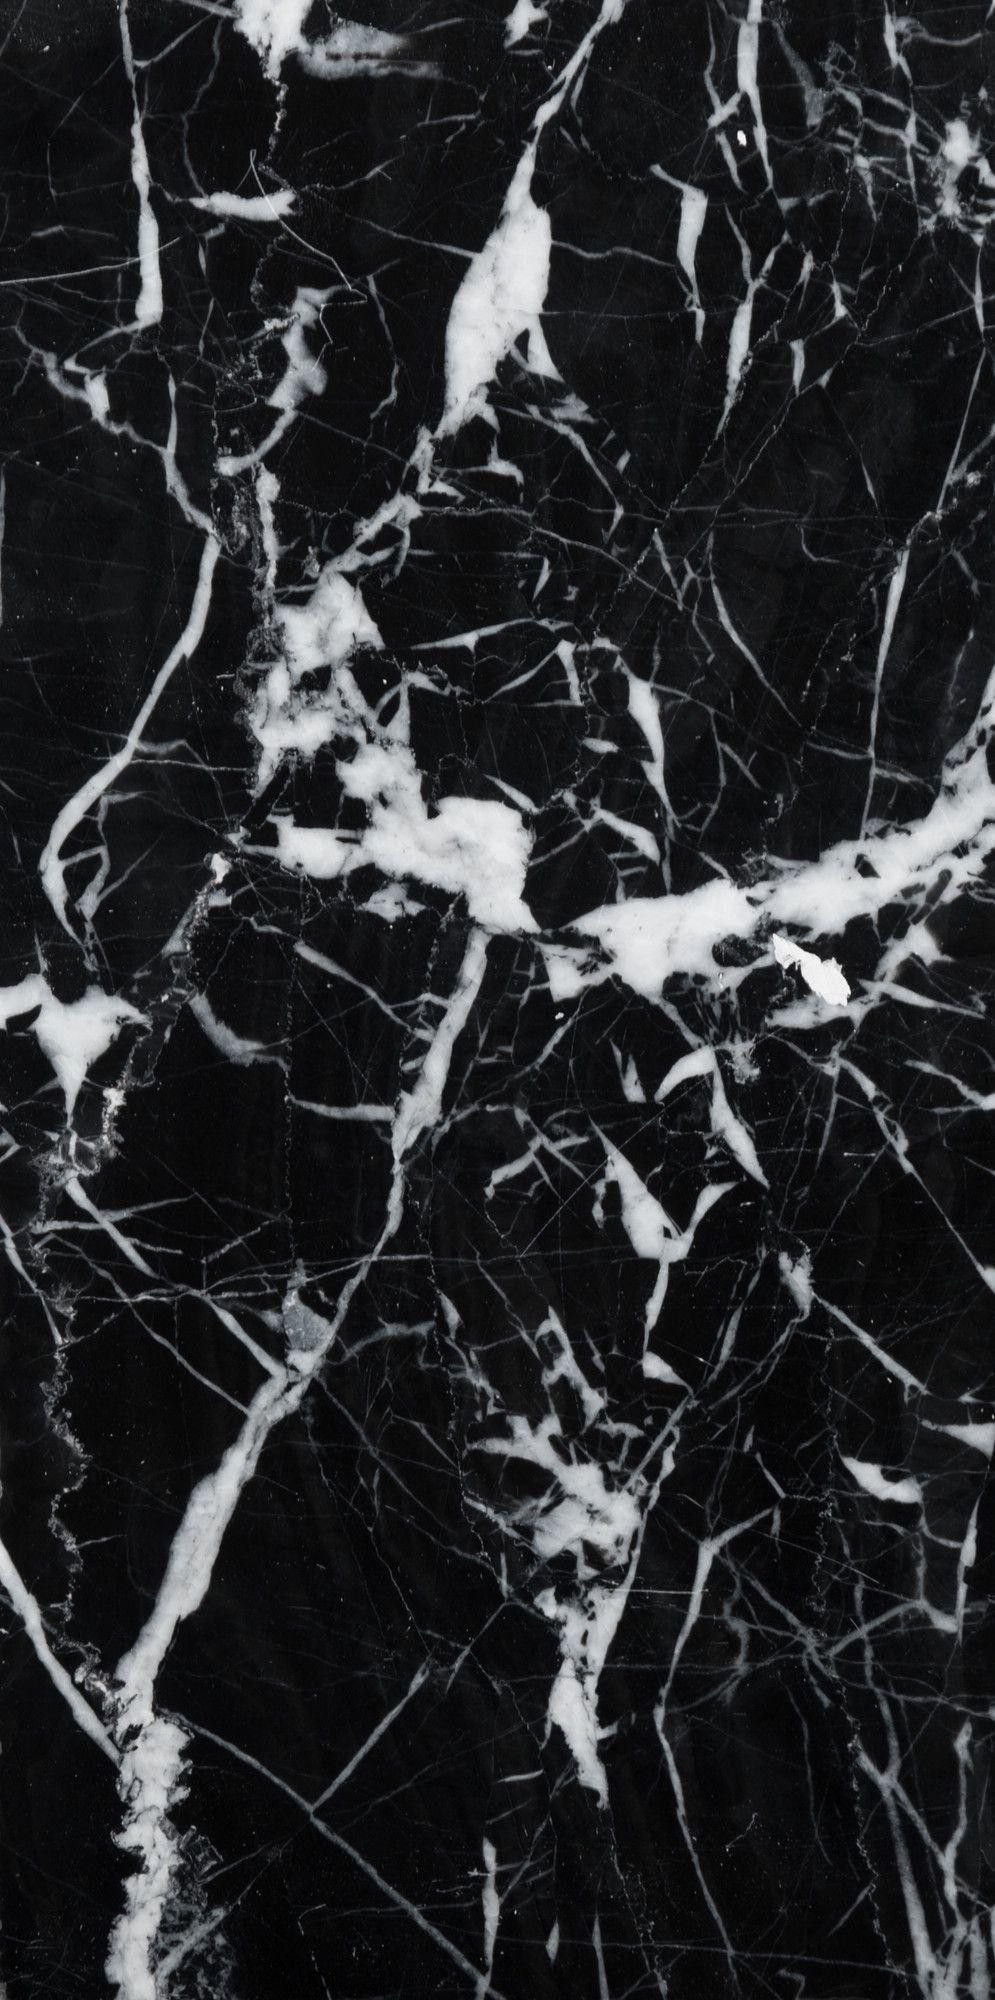 Black Marble Marble Iphone Wallpaper Black Wallpaper Iphone Marble Wallpaper Phone